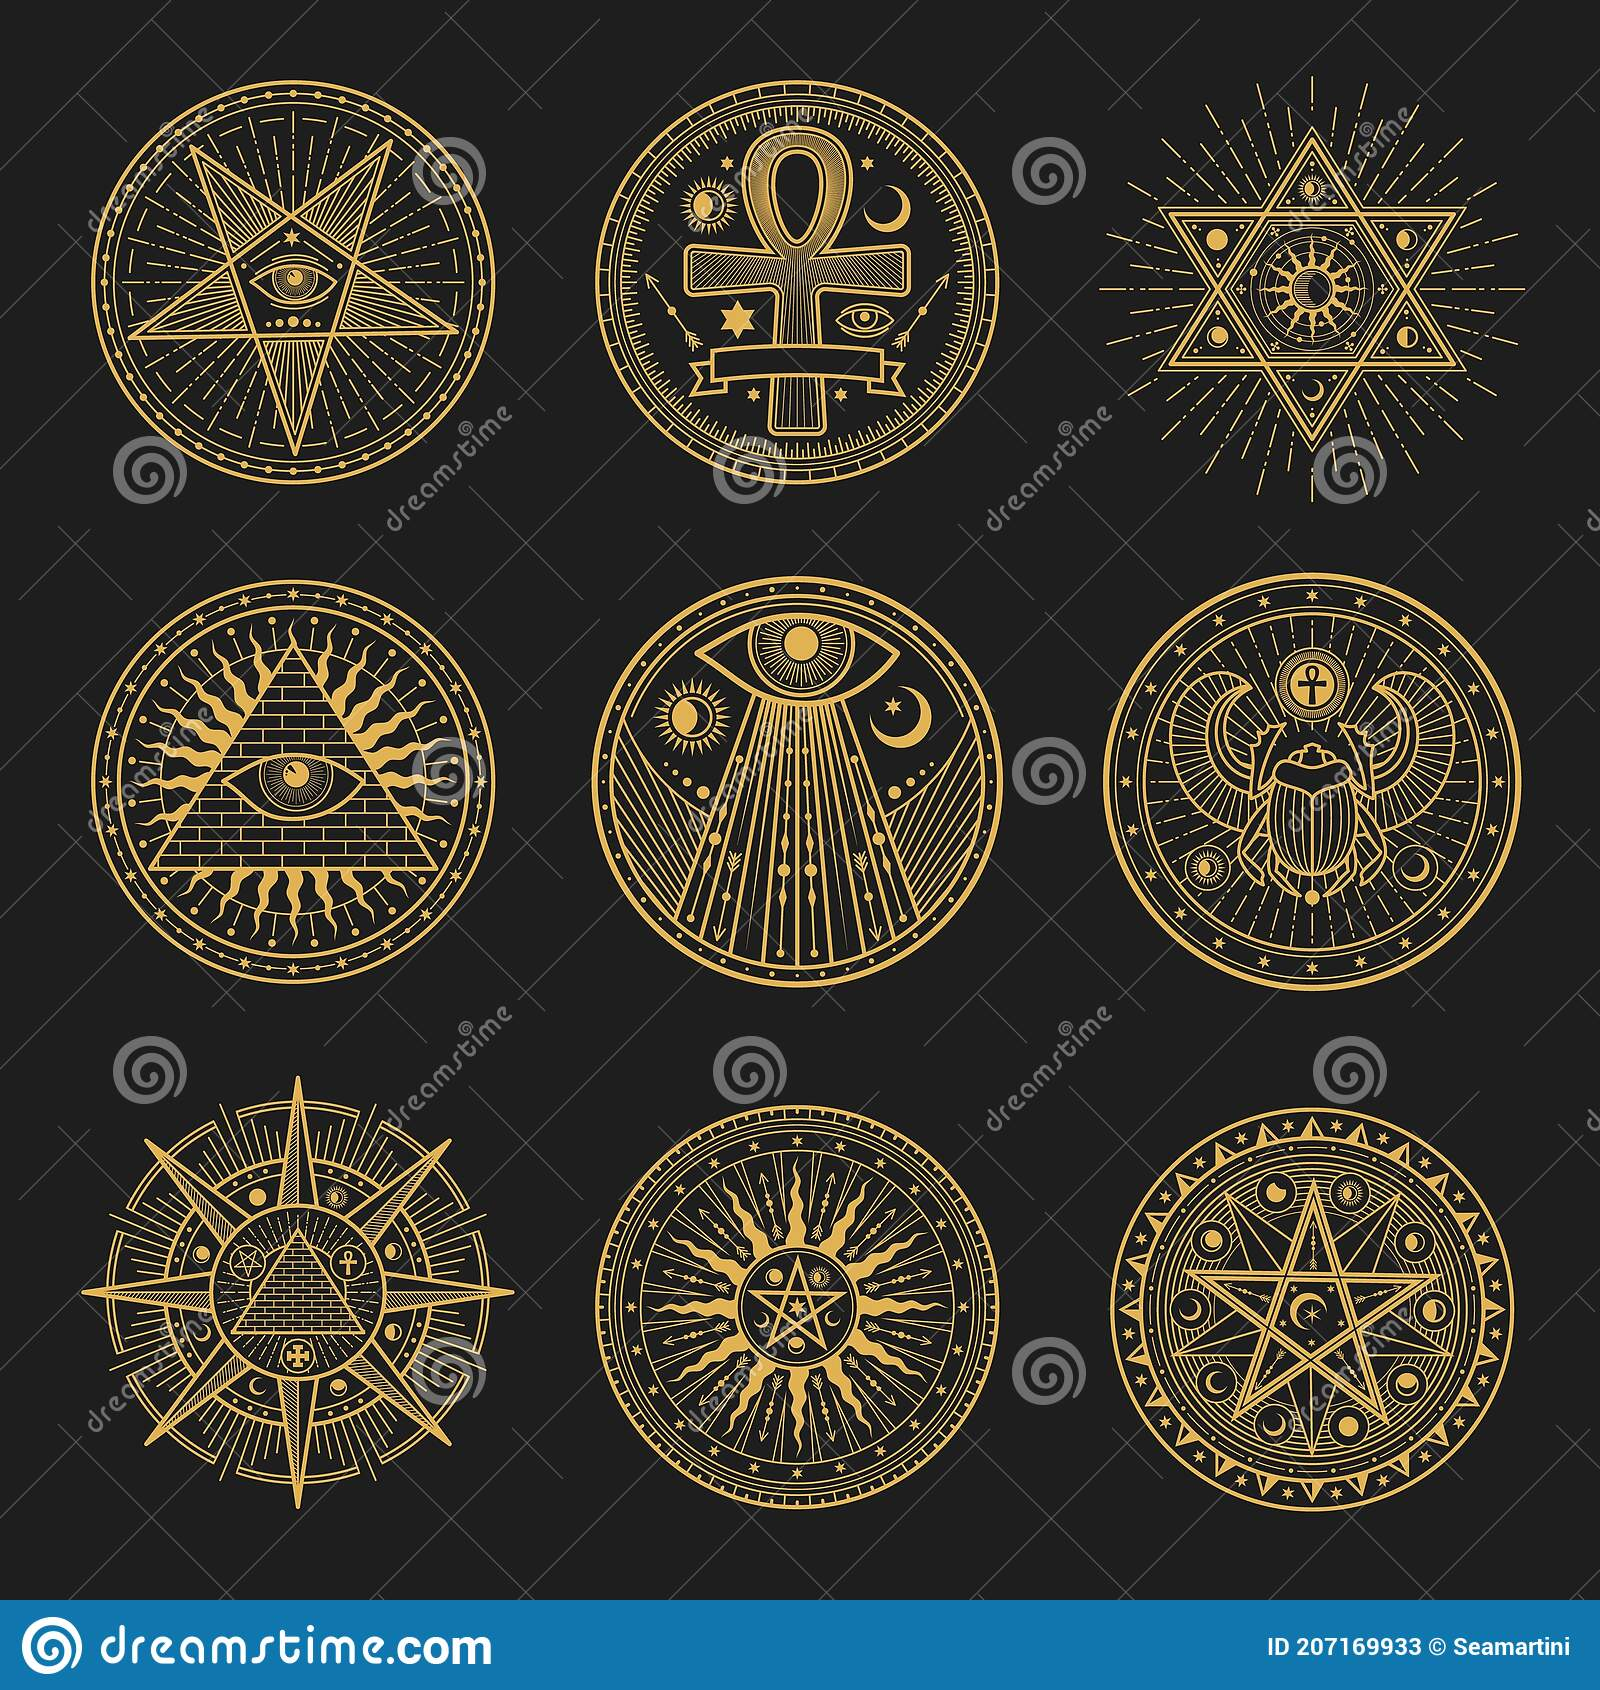 Occult signs, occultism, alchemy astrology symbols